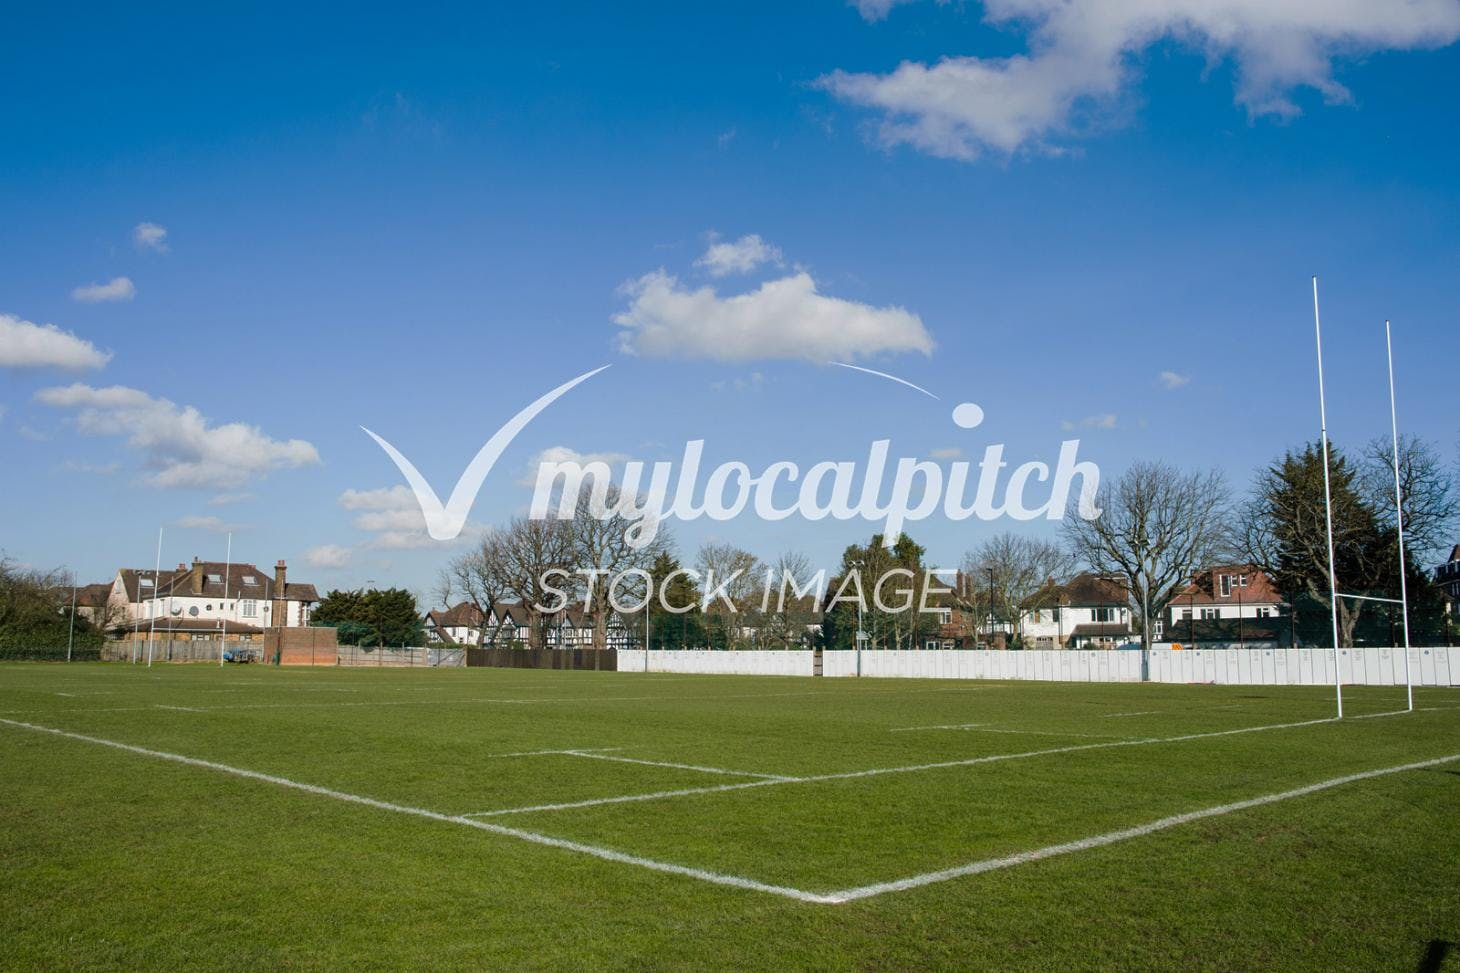 William Bird Open Space Union | Grass rugby pitch